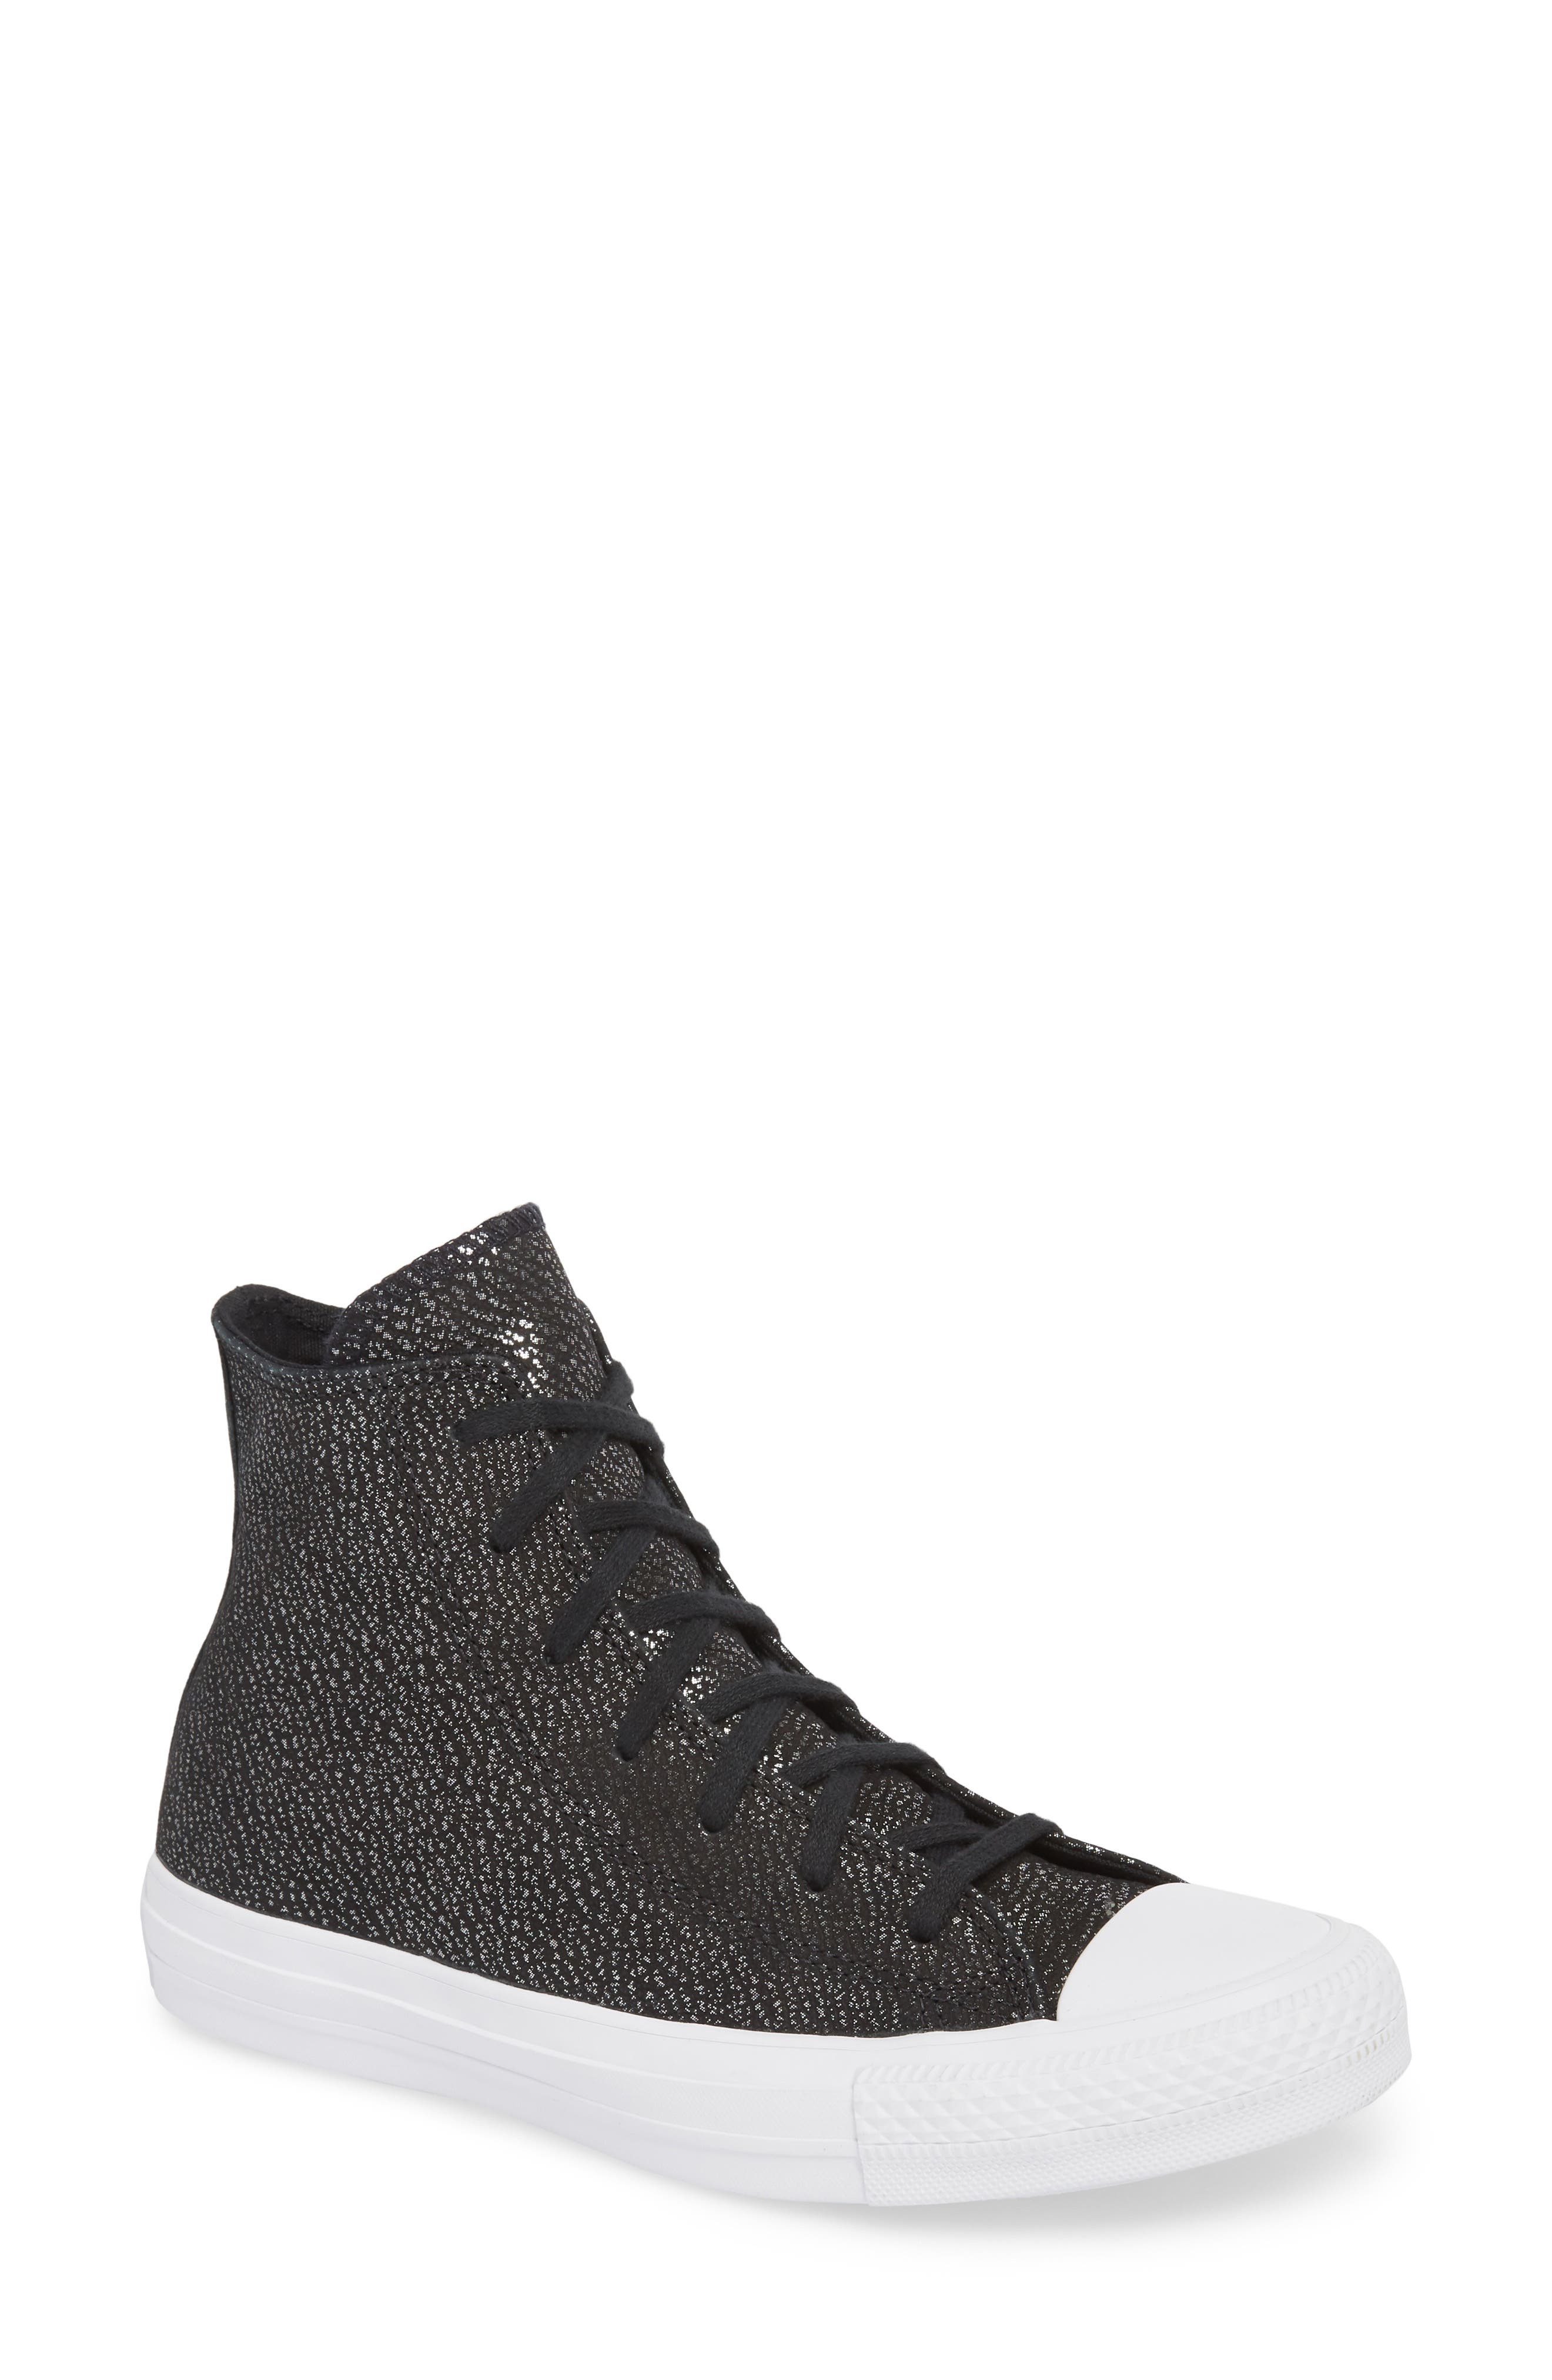 Chuck Taylor<sup>®</sup> All Star<sup>®</sup> Tipped Metallic High Top Sneaker,                             Main thumbnail 2, color,